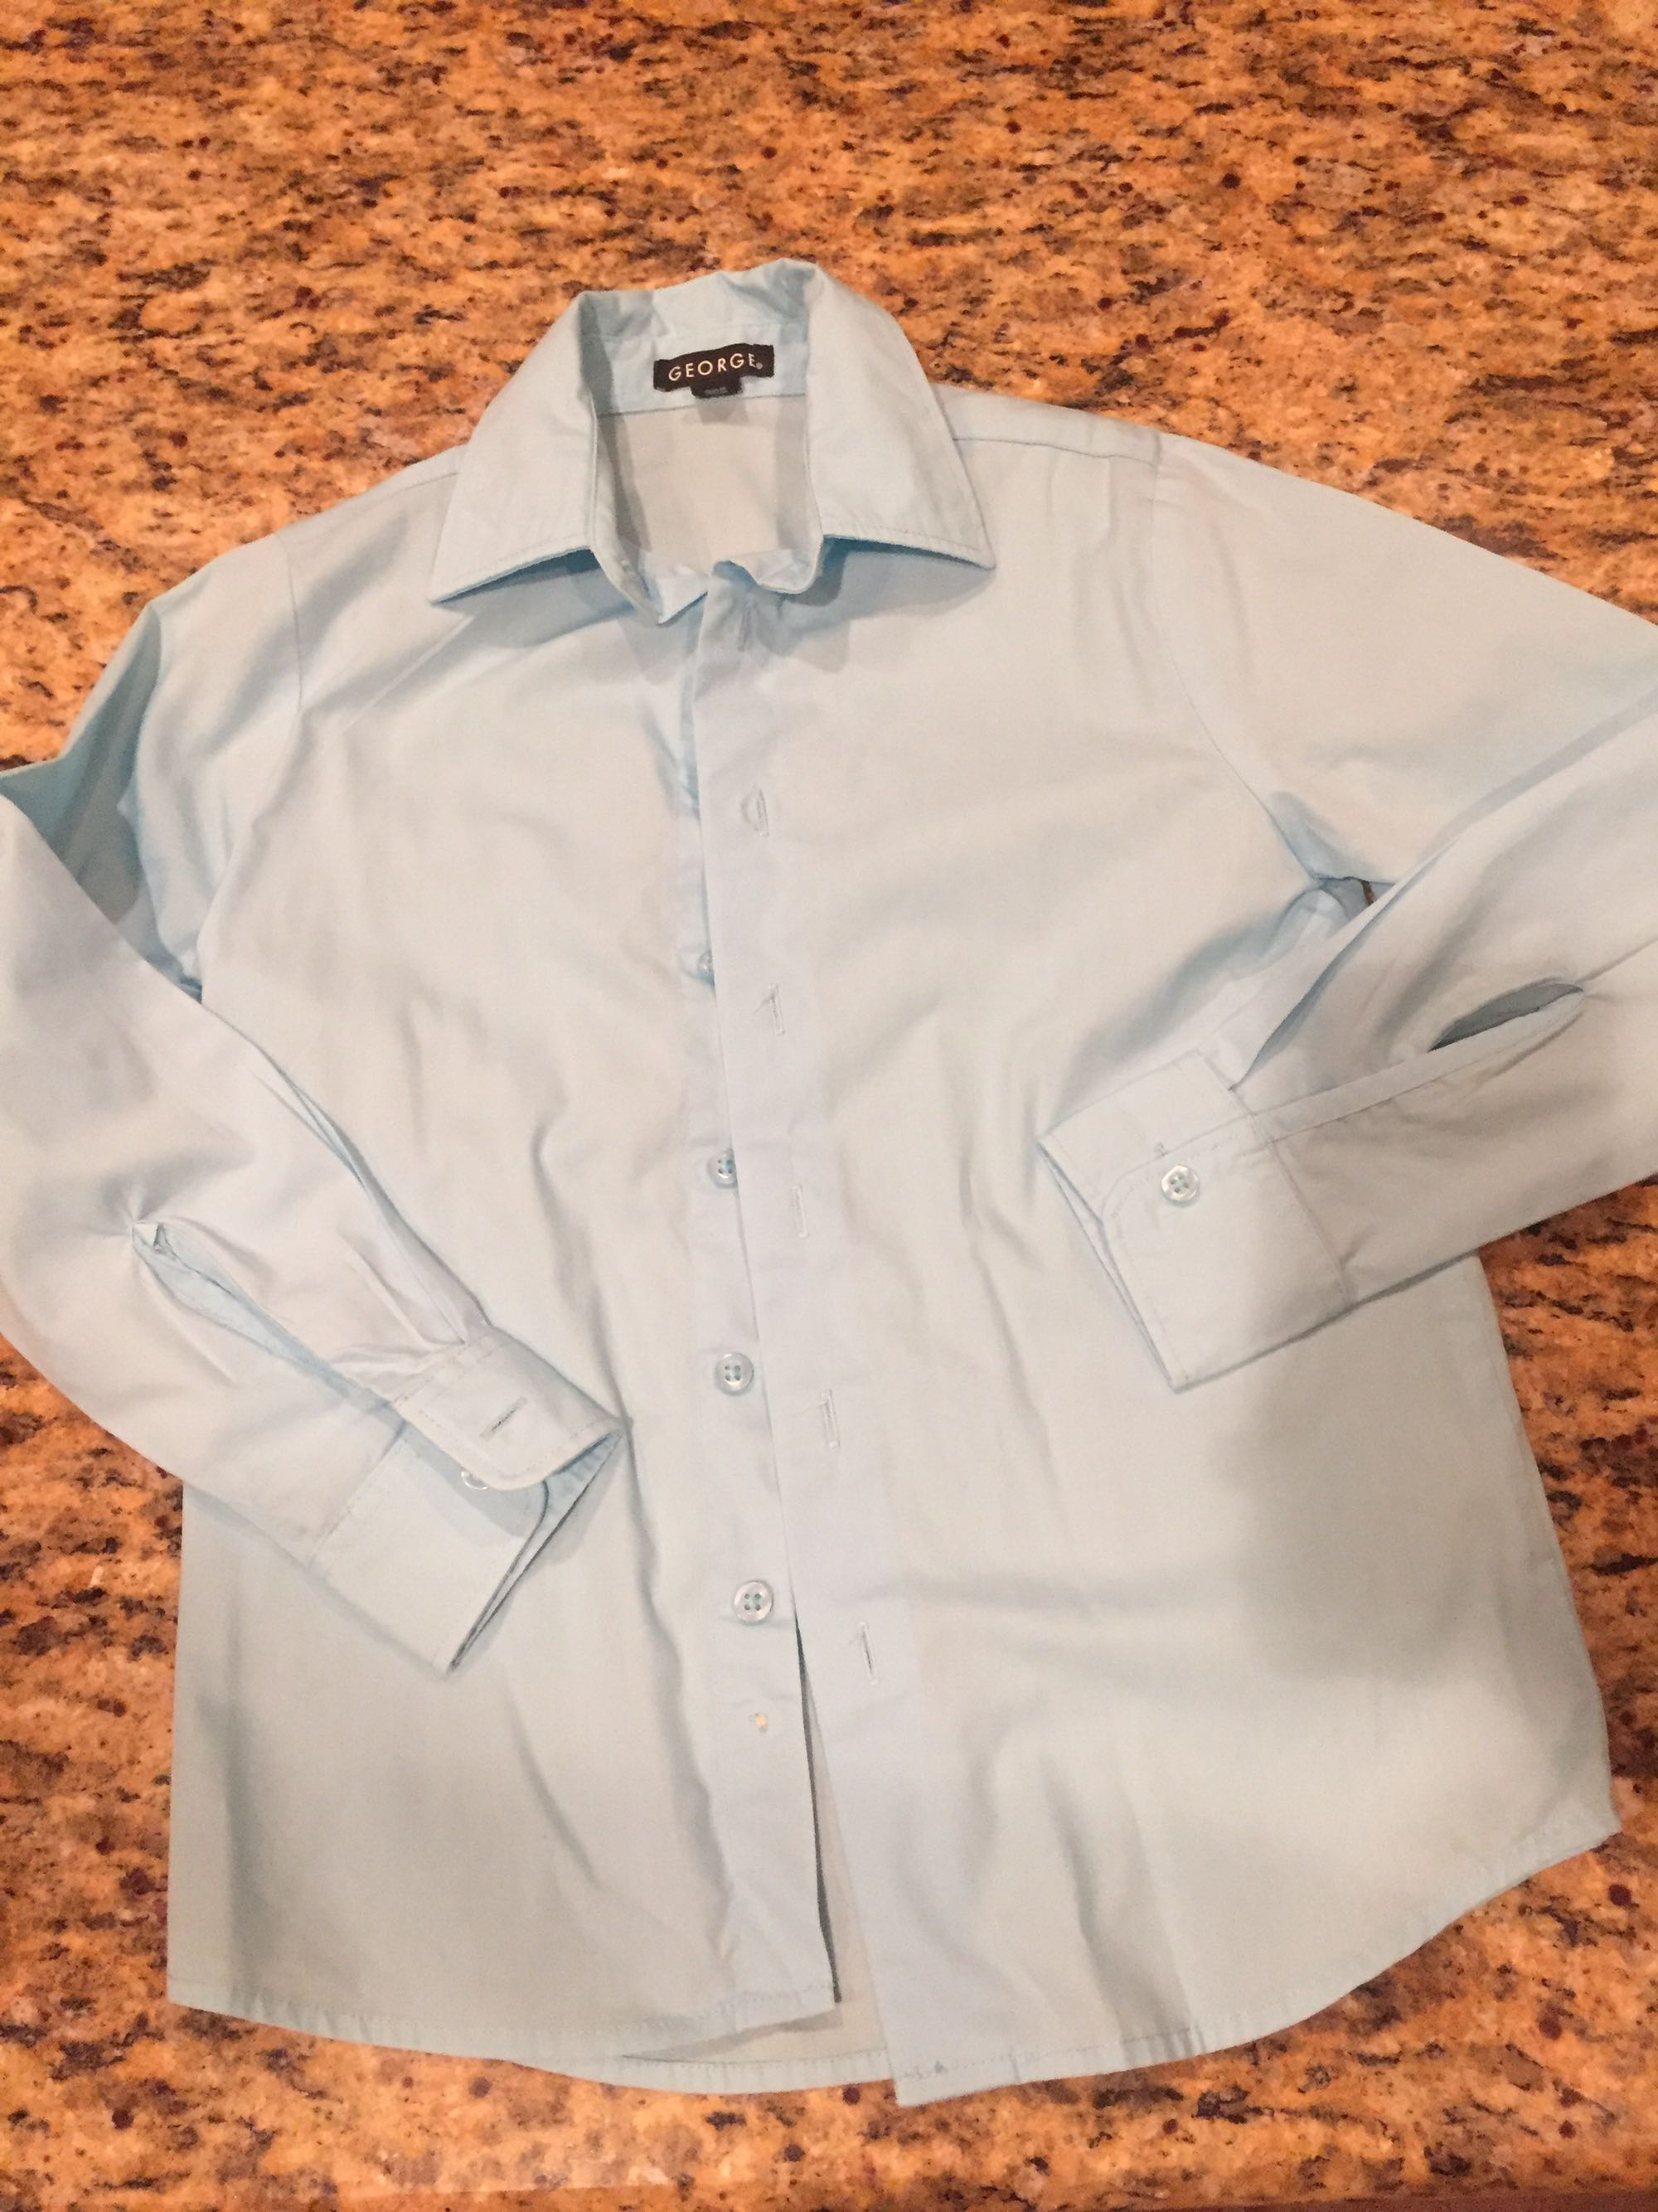 George brand light blue shirt worn once for Maifest boys size 8. Excellent condition